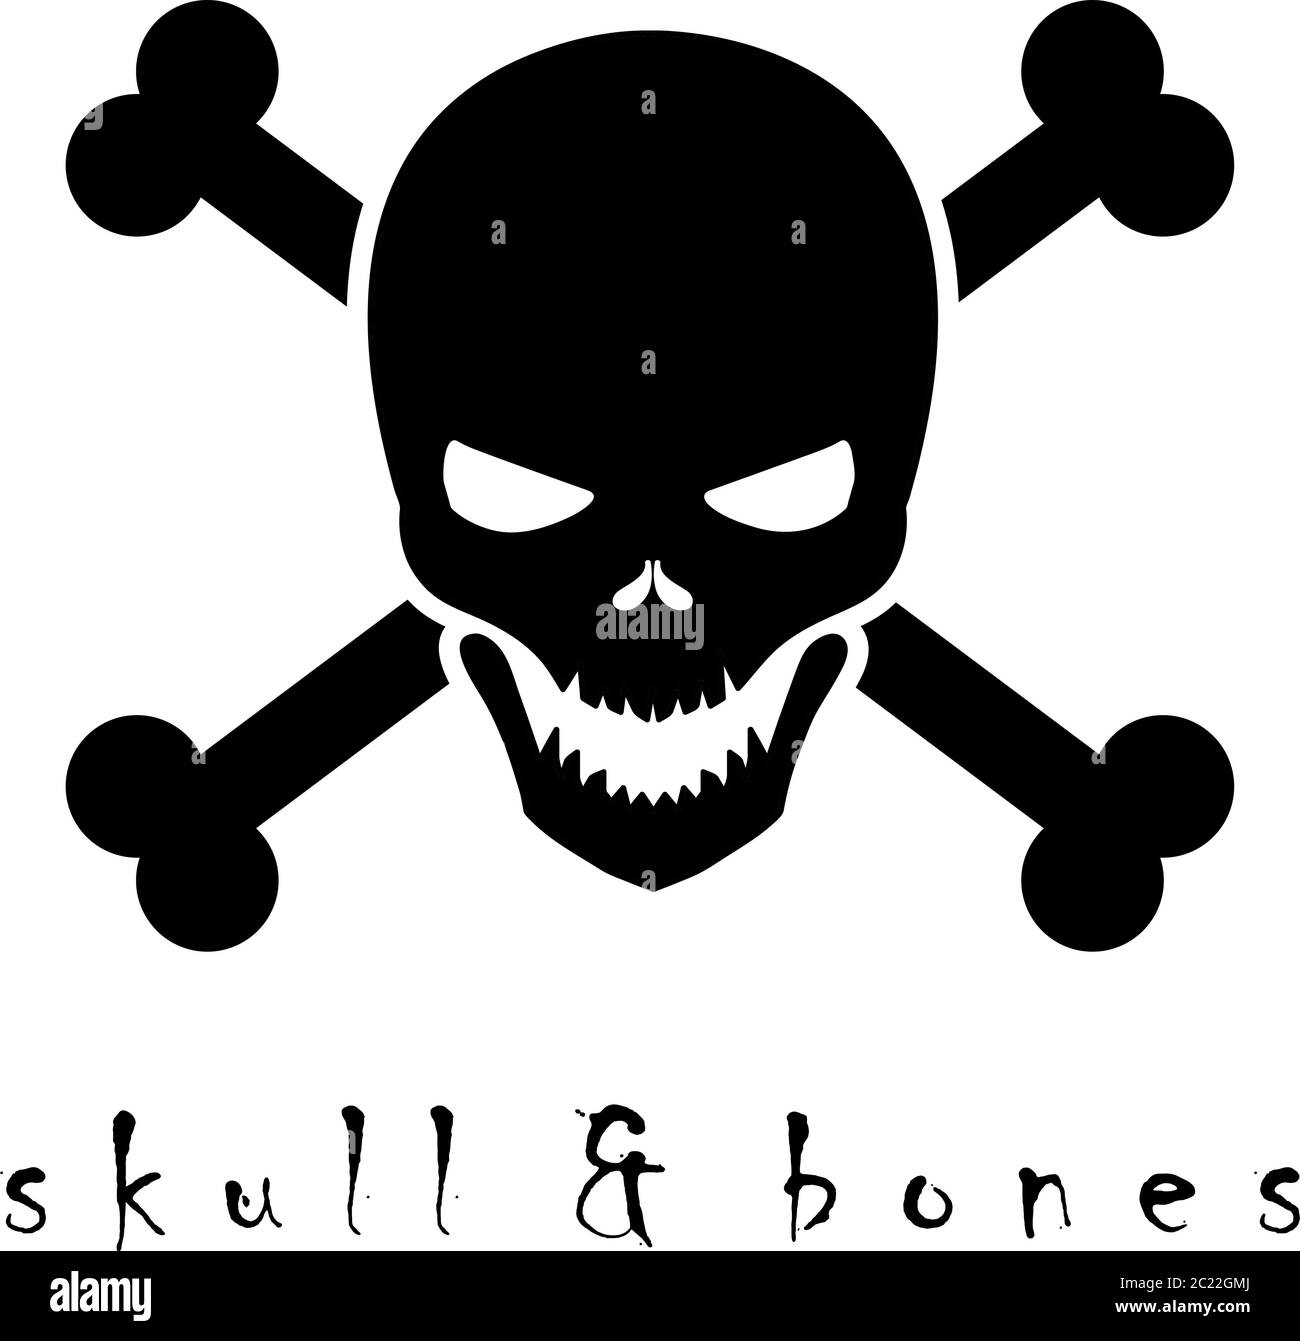 Black Skull Crossbones Vector Logo Design Stock Vector Image Art Alamy